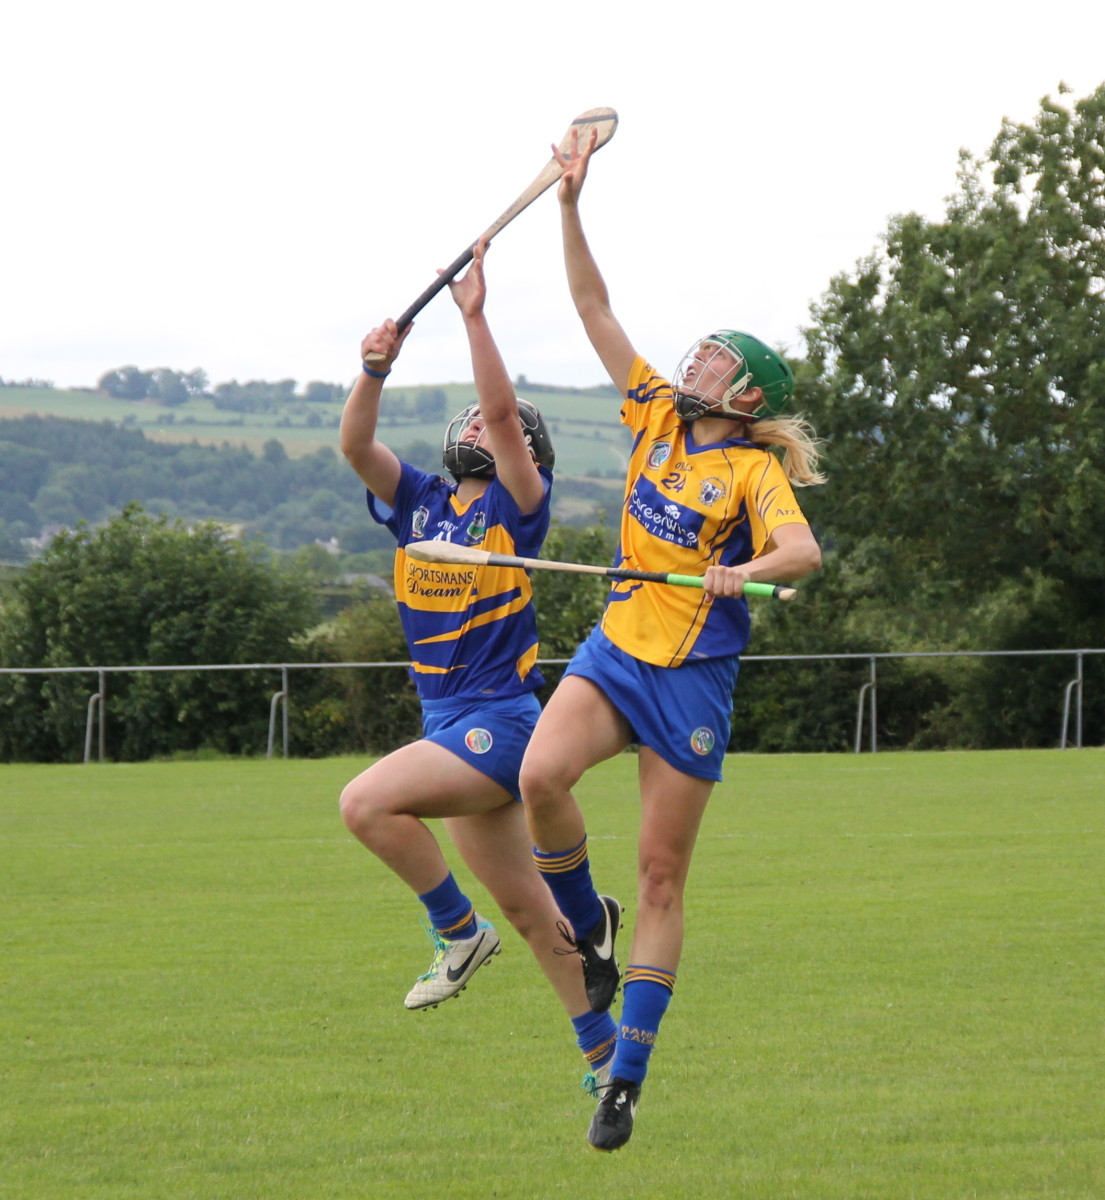 Camogie Clares Emma O'Driscoll & Tipps Mairead Teehan go high for a dropping ball in the Liberty Insurance S